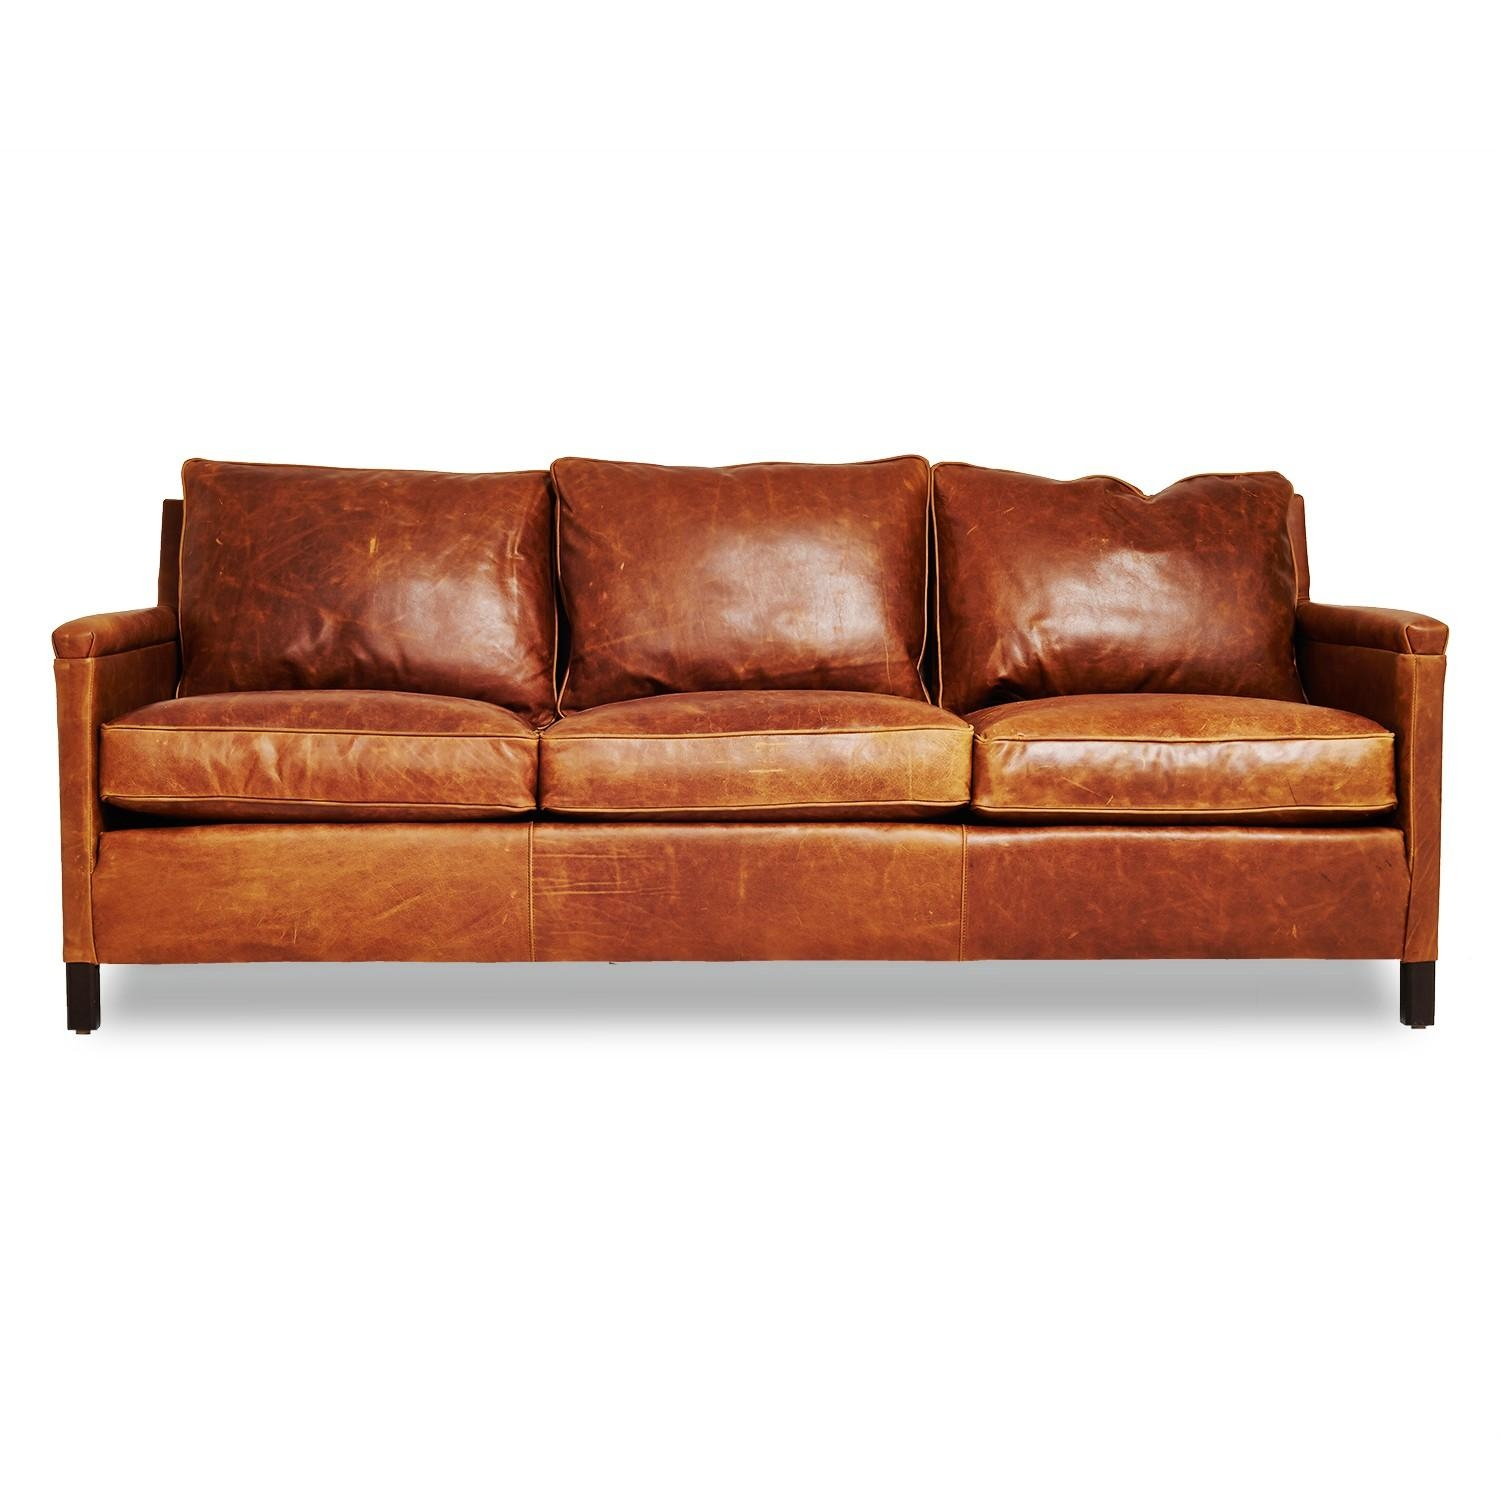 20 top camel color leather sofas sofa ideas for Leather sofa set